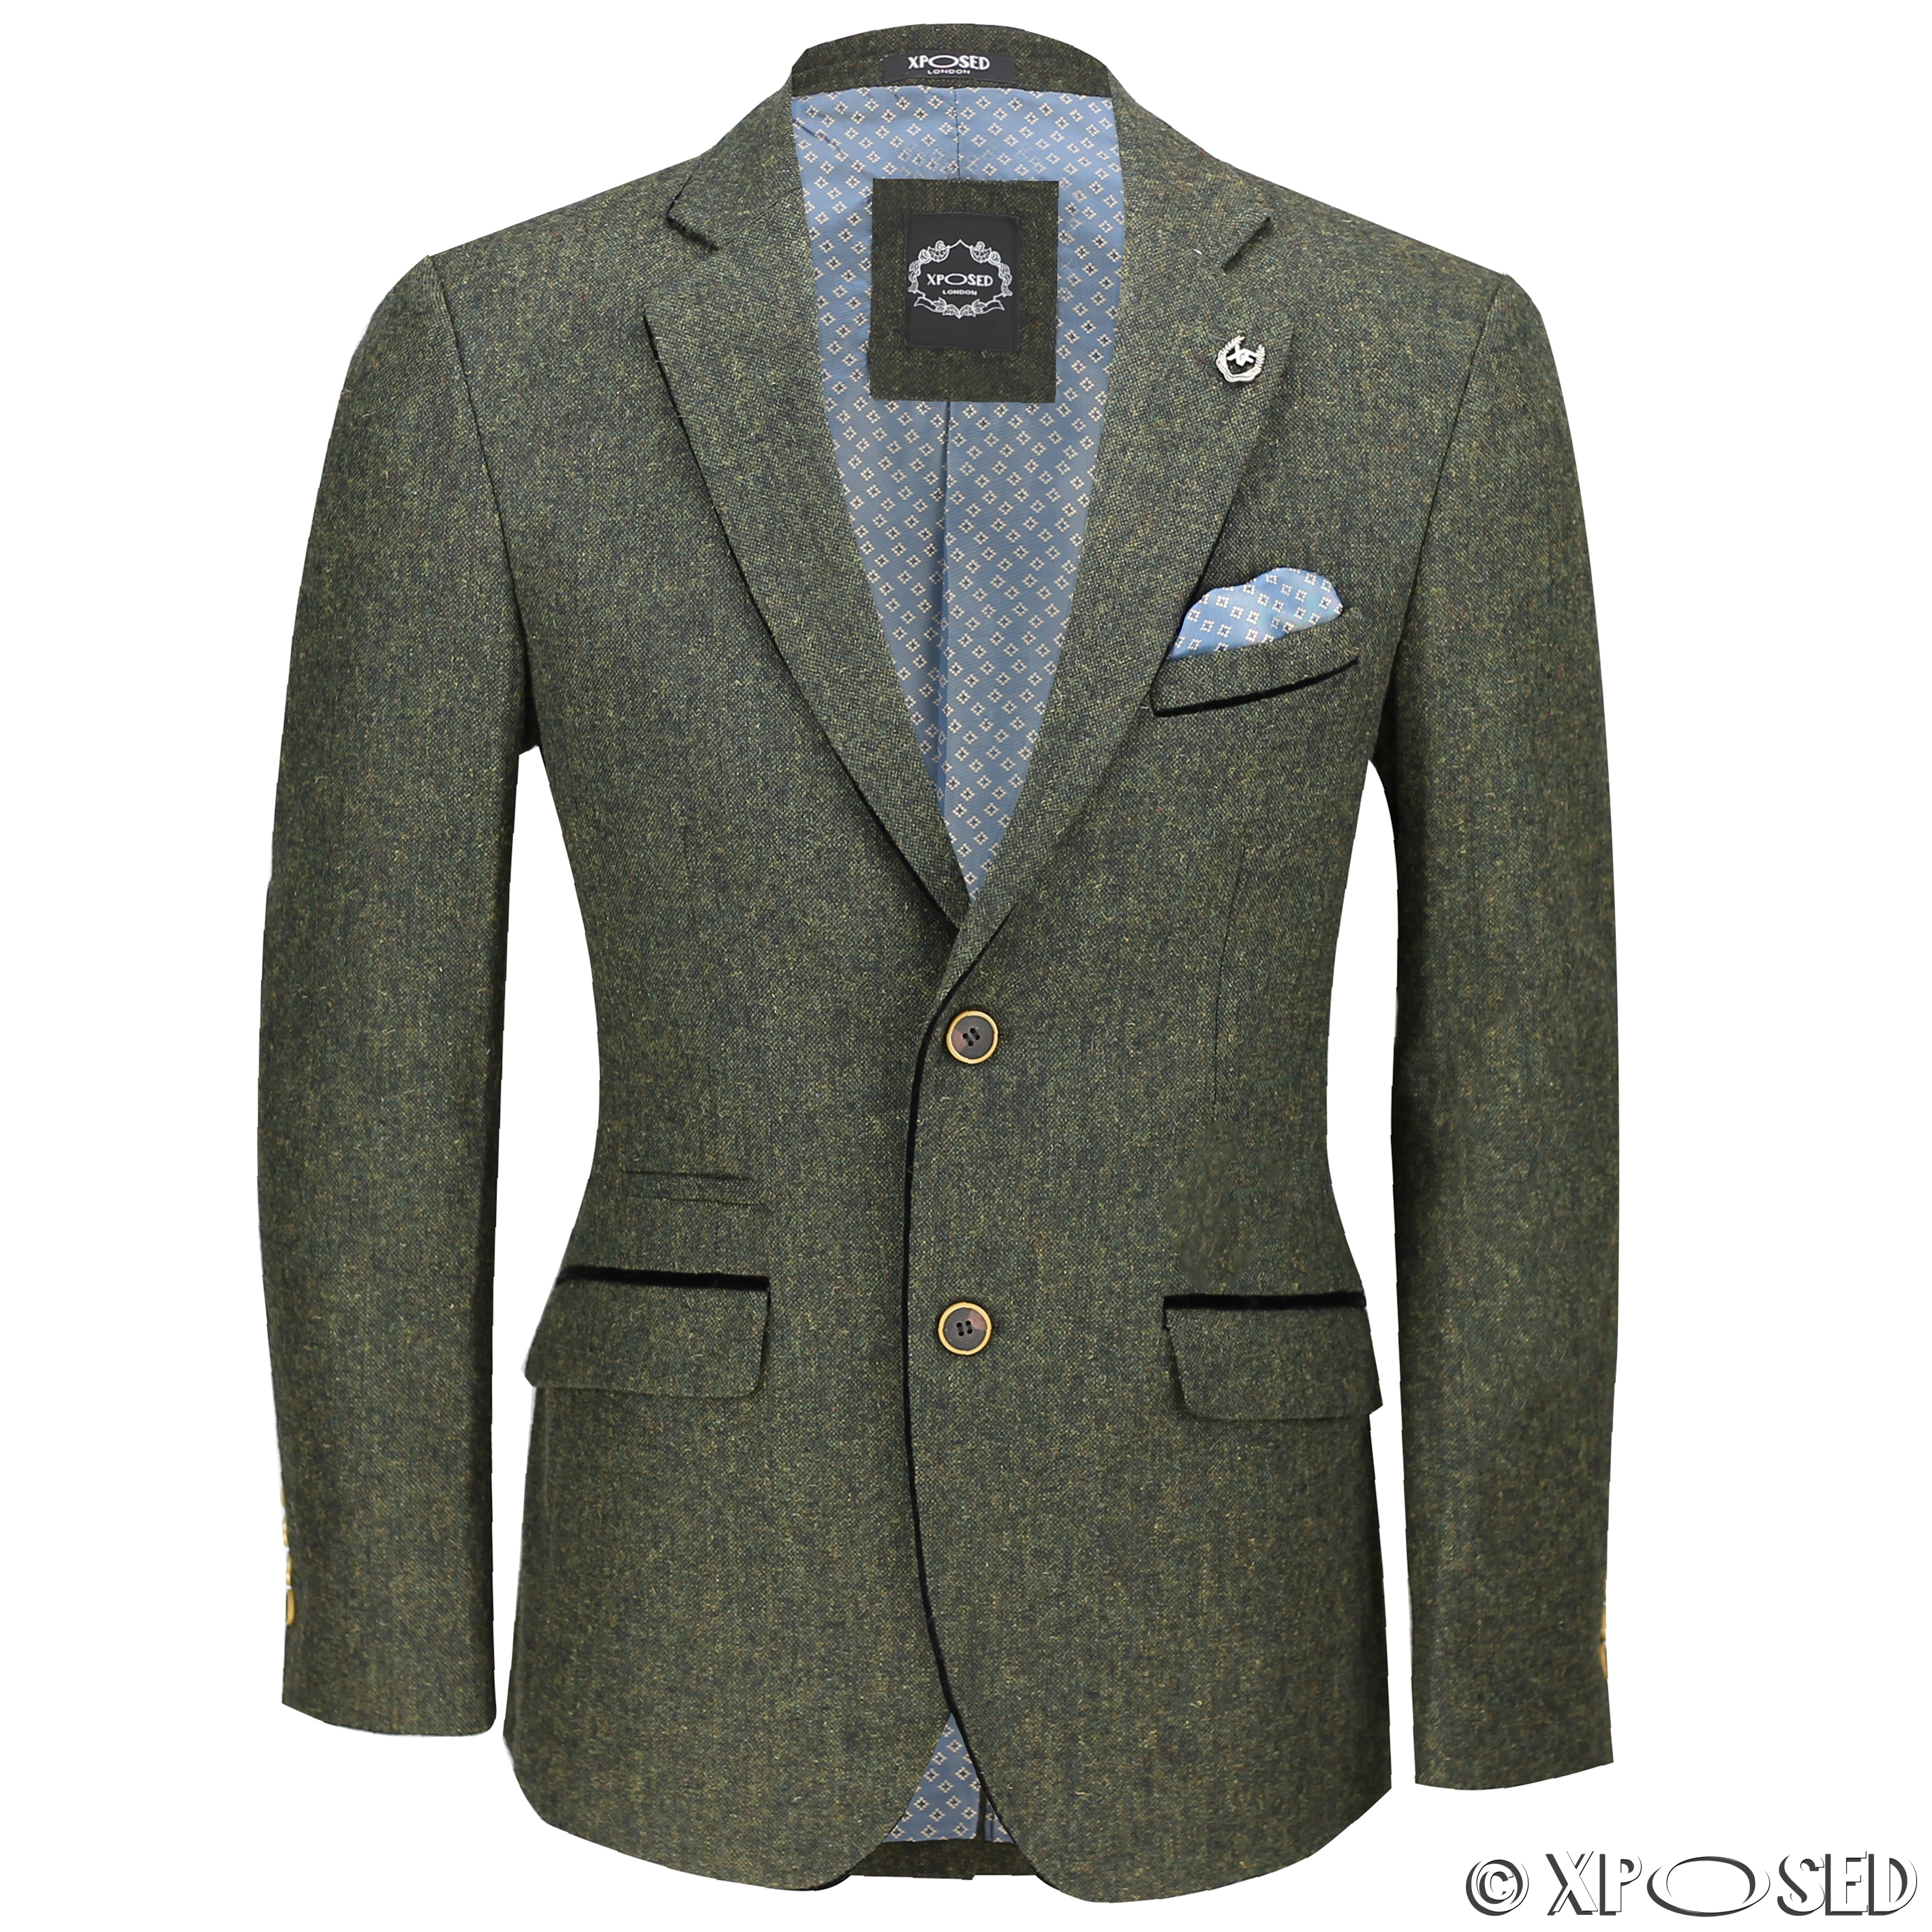 mens vintage tweed blazer in tan green blue designer formal slim fit suit jacket ebay. Black Bedroom Furniture Sets. Home Design Ideas